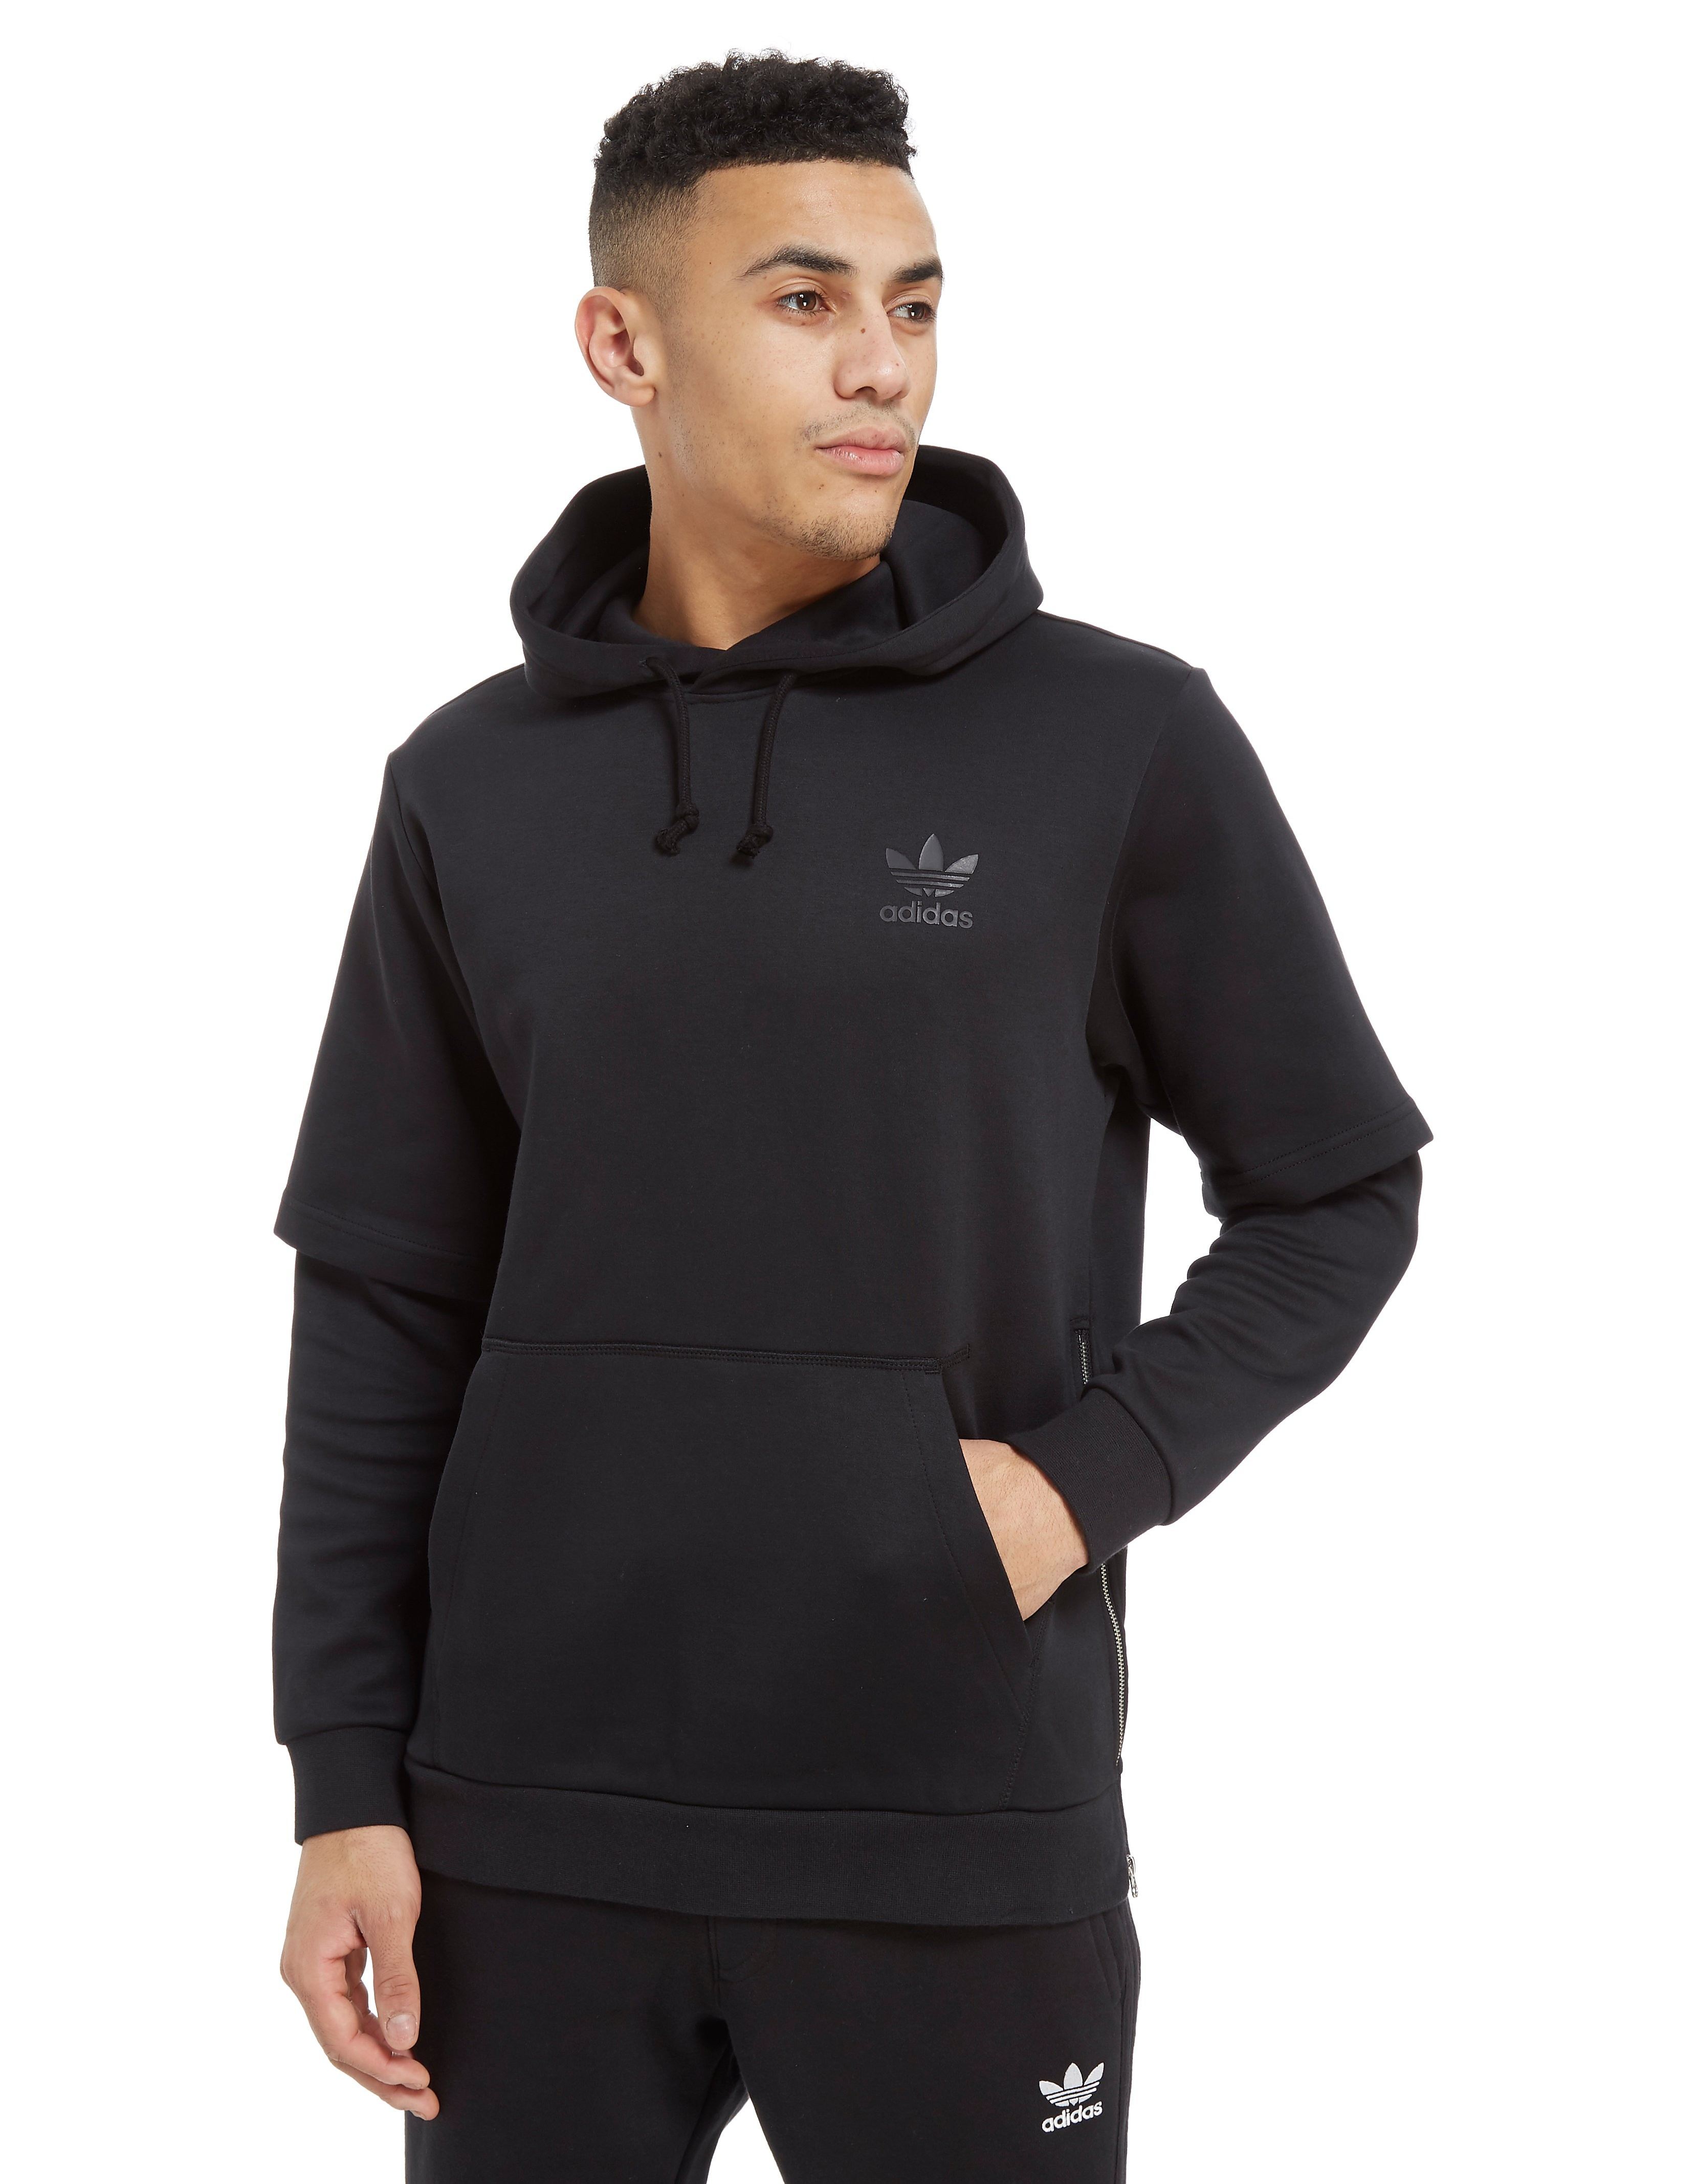 adidas Originals Winter Overhead Hoodie